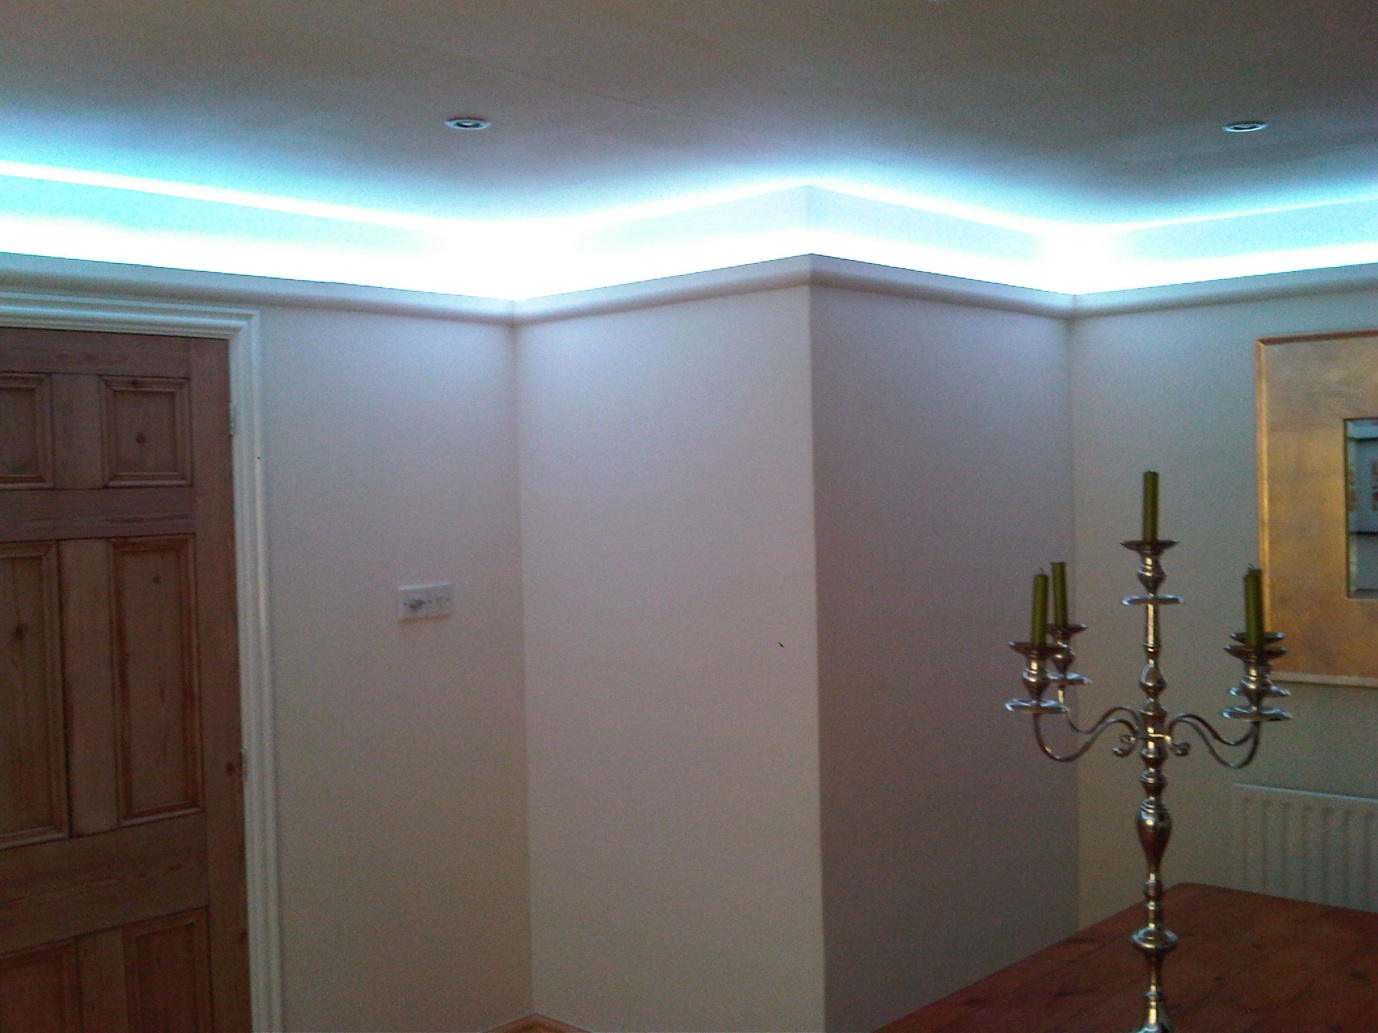 Instyle Led Lighting Ideas Of Where To Use The Led Tape